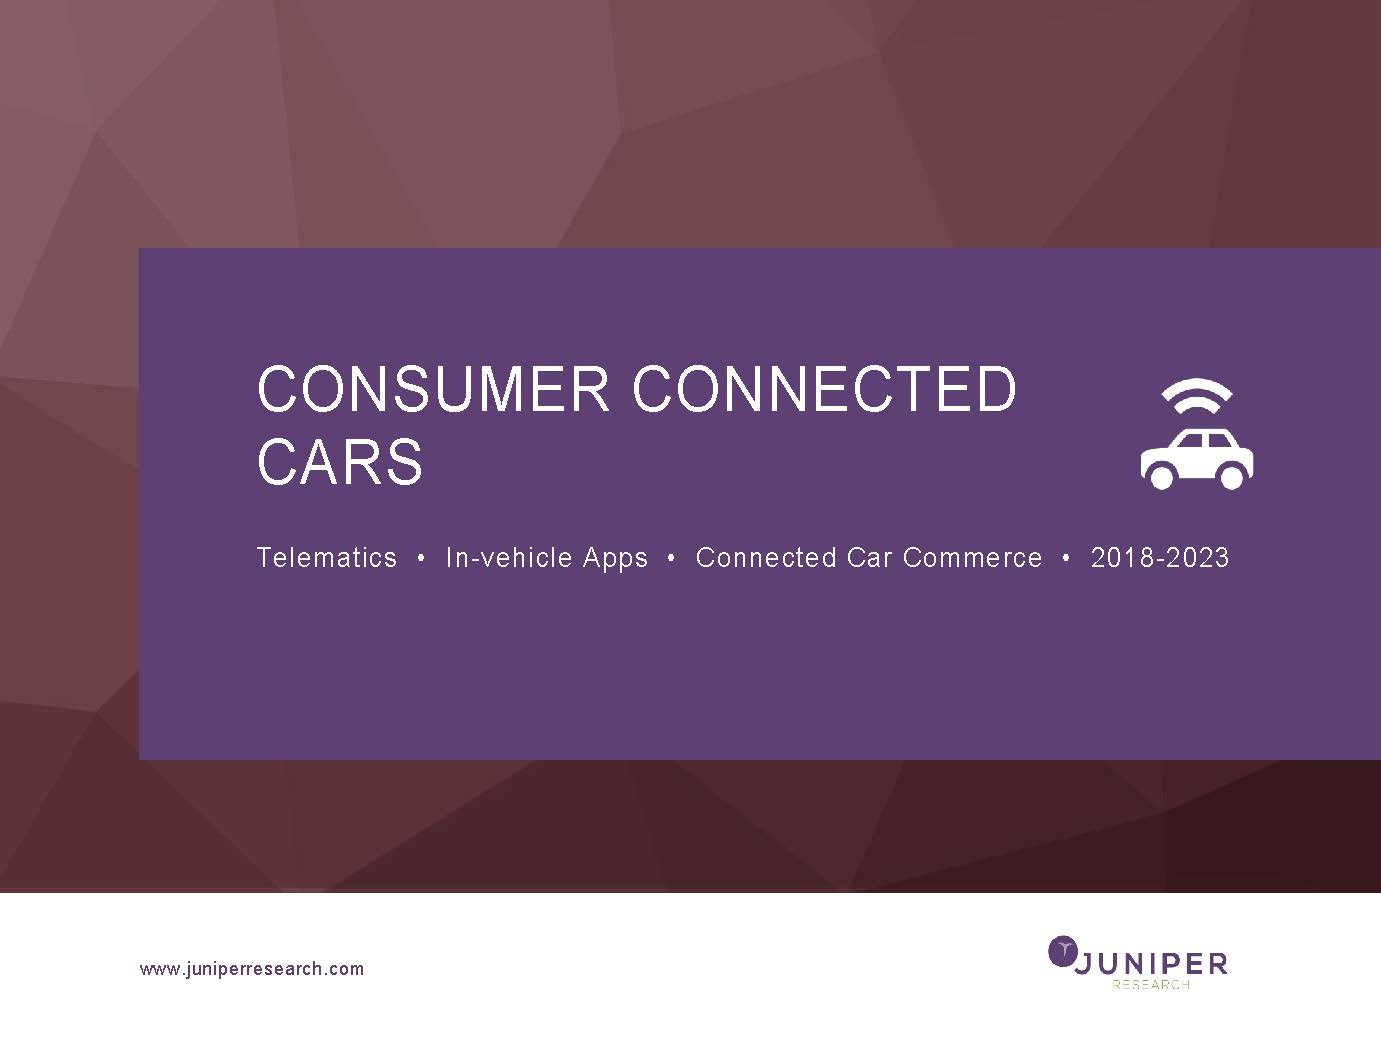 Consumer Connected Cars: Deep Dive Strategy 2018-2023